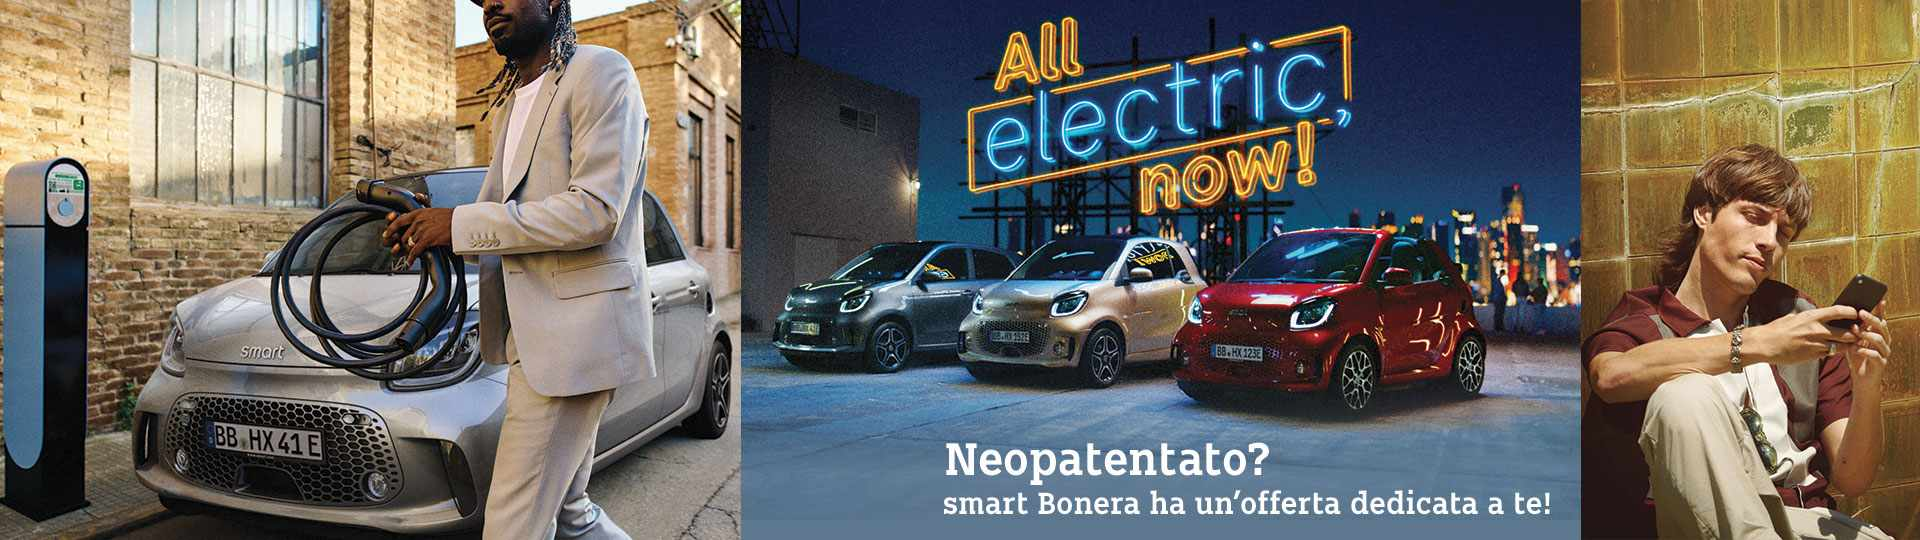 header_smart_neopatentati_marzo_2021.jpg